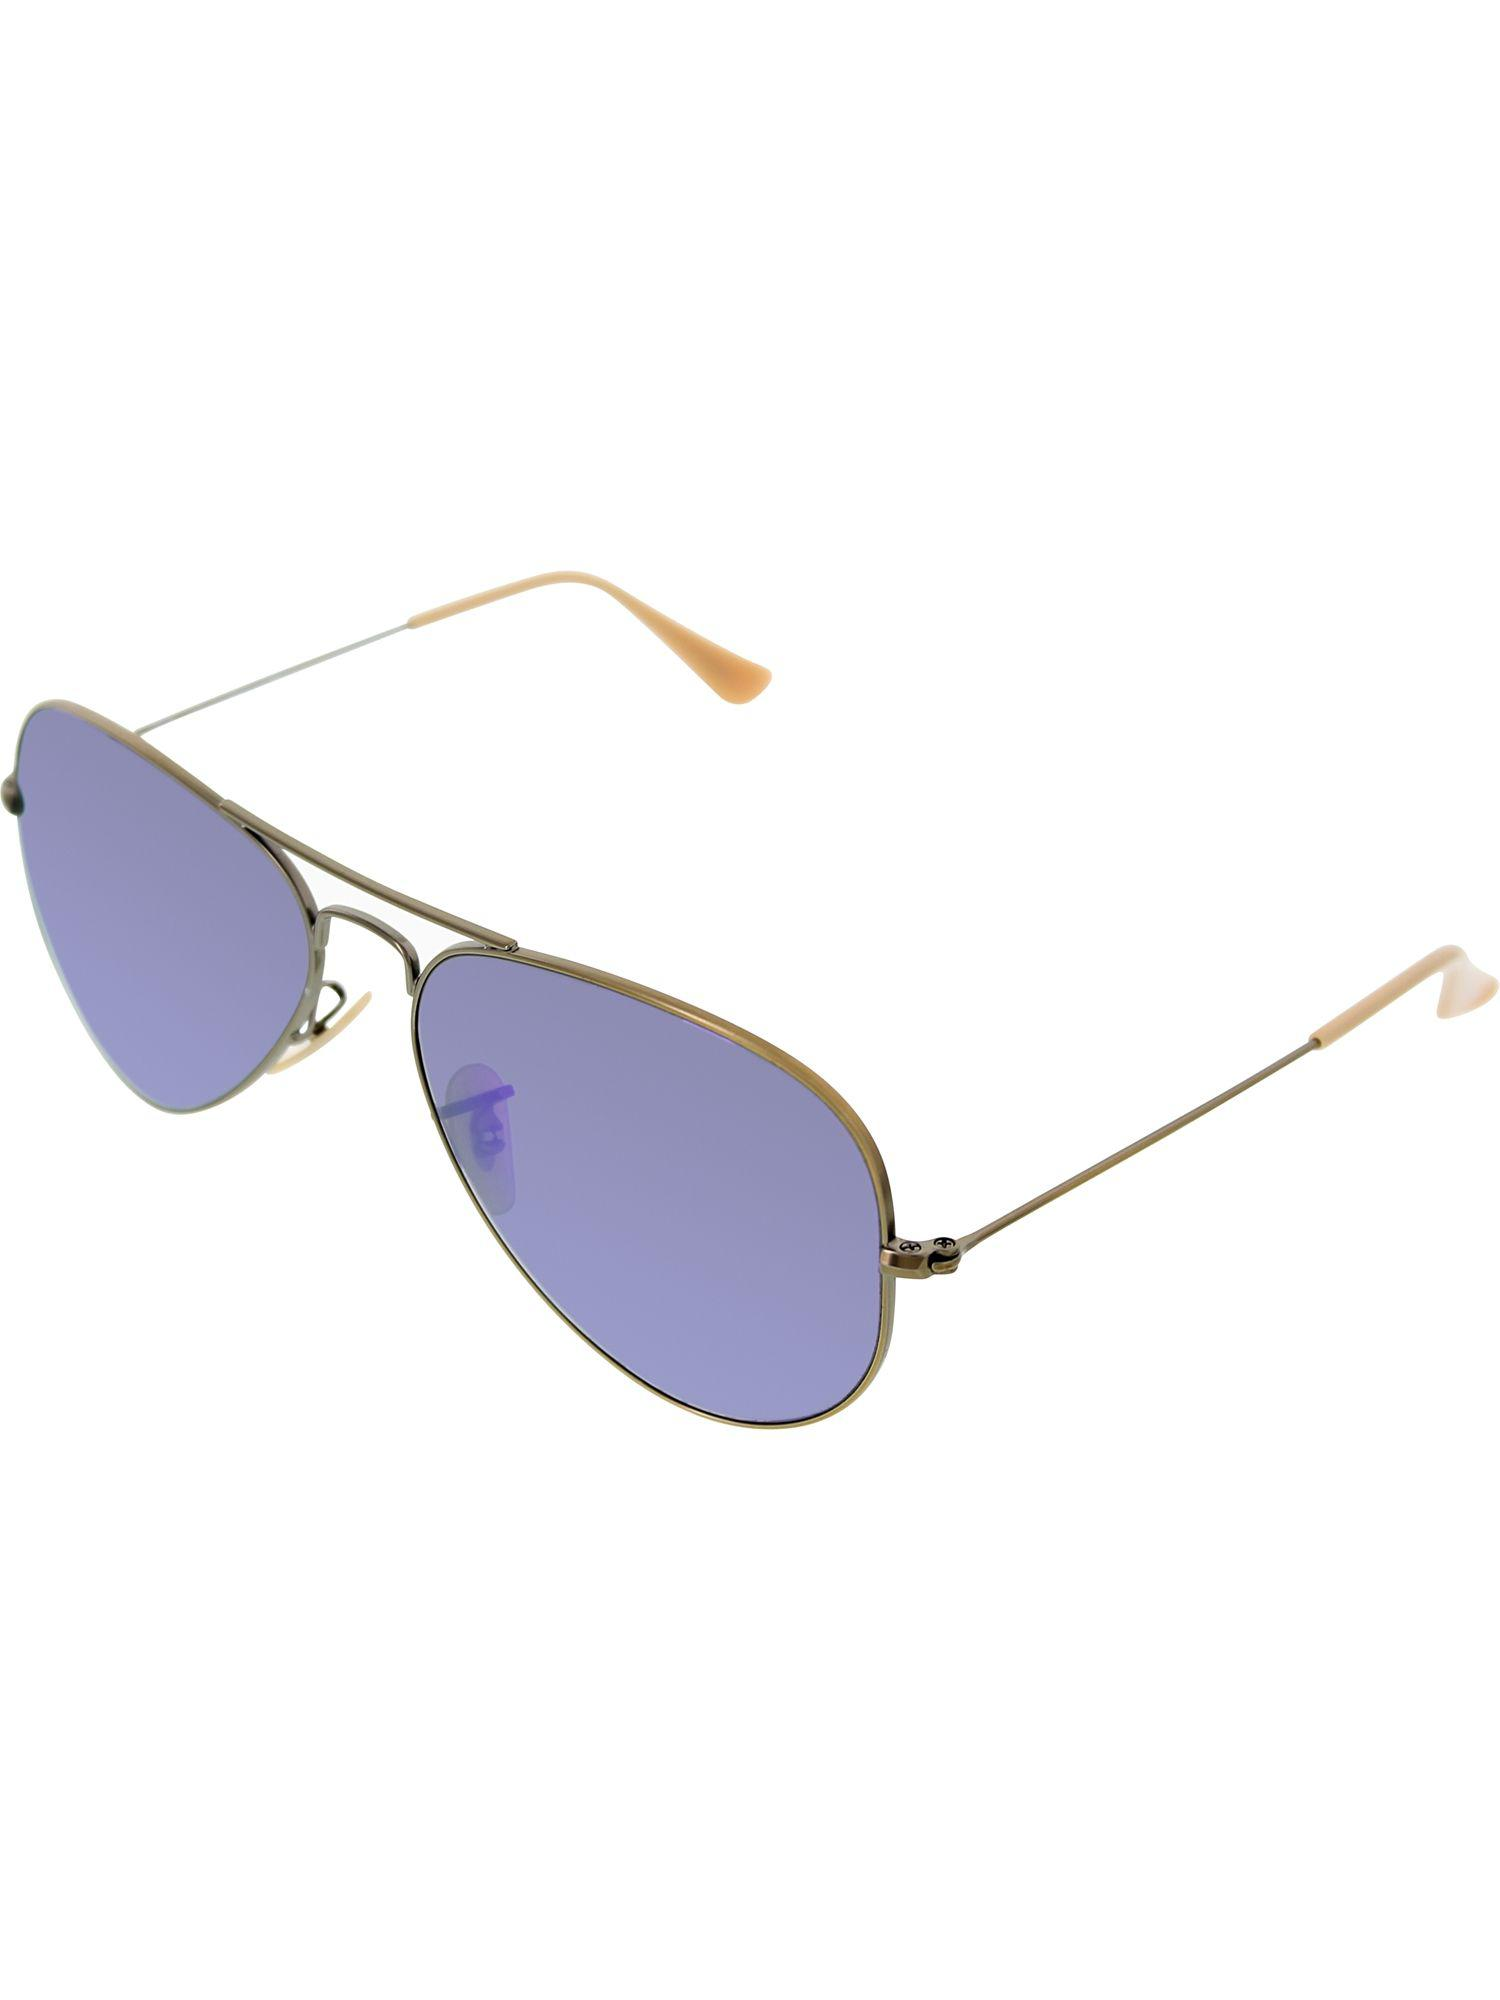 444018be04 Lyst - Ray-Ban Men s Mirrored Aviator Rb3025-167 1m-58 Gold ...